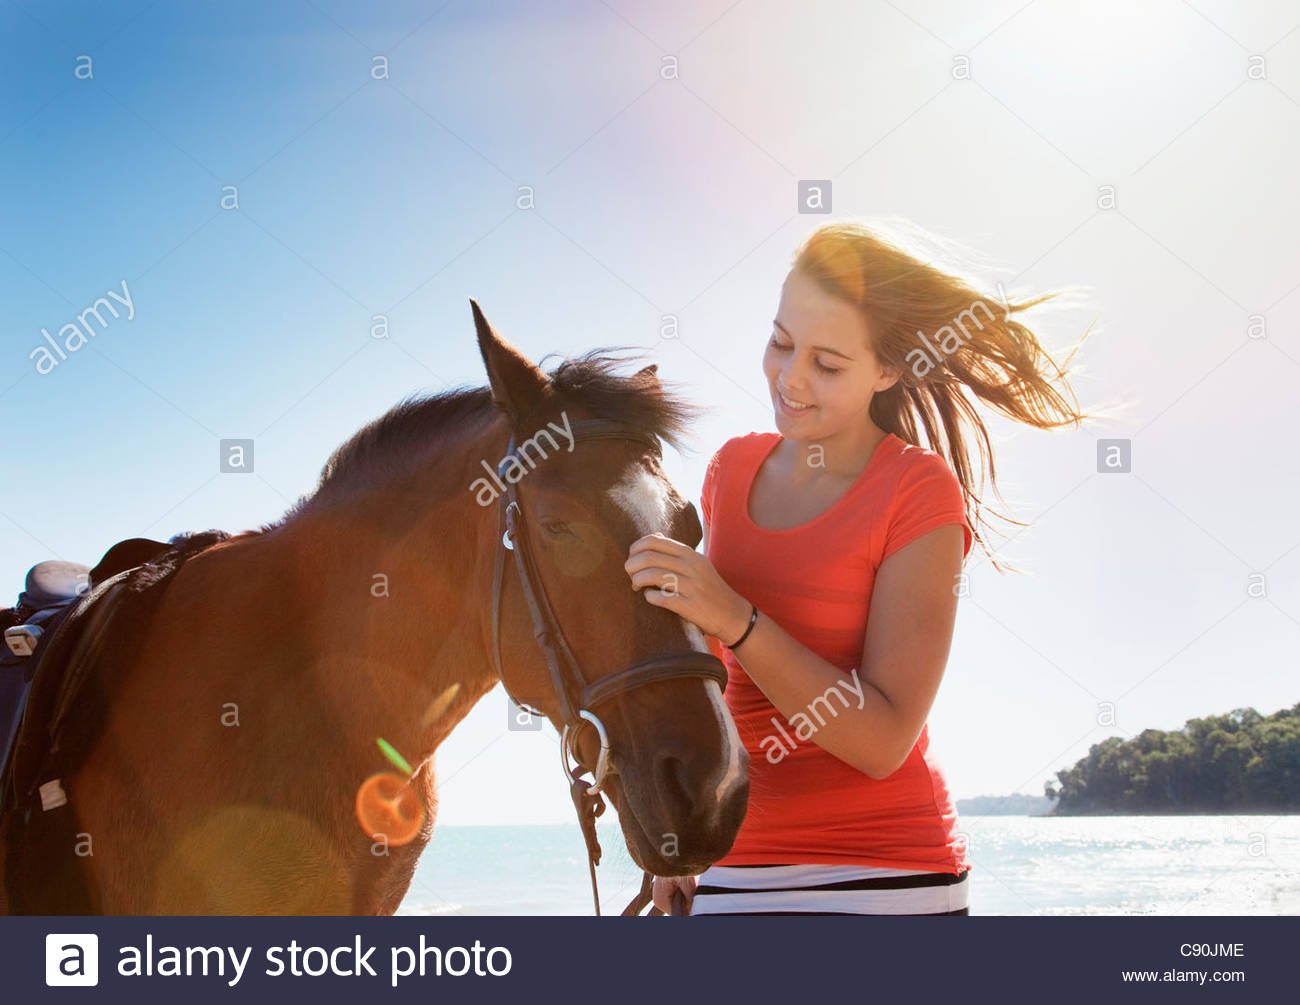 Girl petting horse outdoors - Stock Image